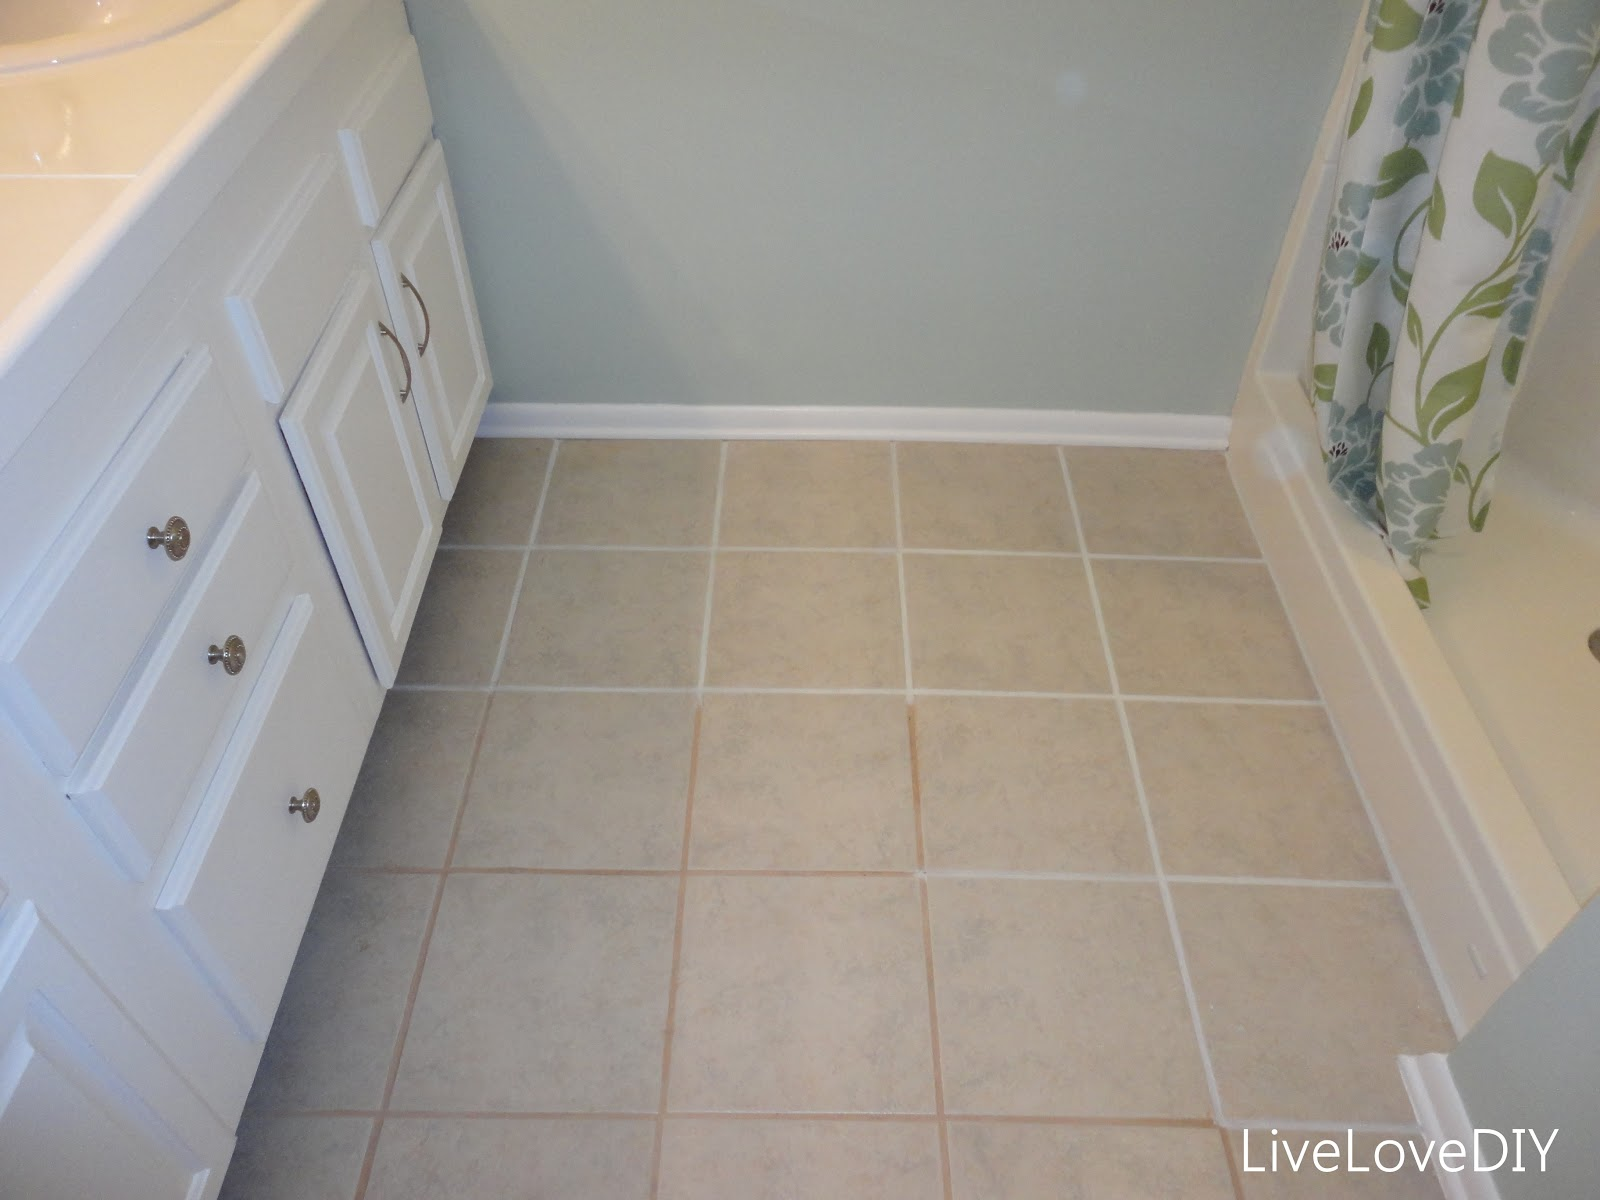 including how to paint tile grout and how to frame in a mirror